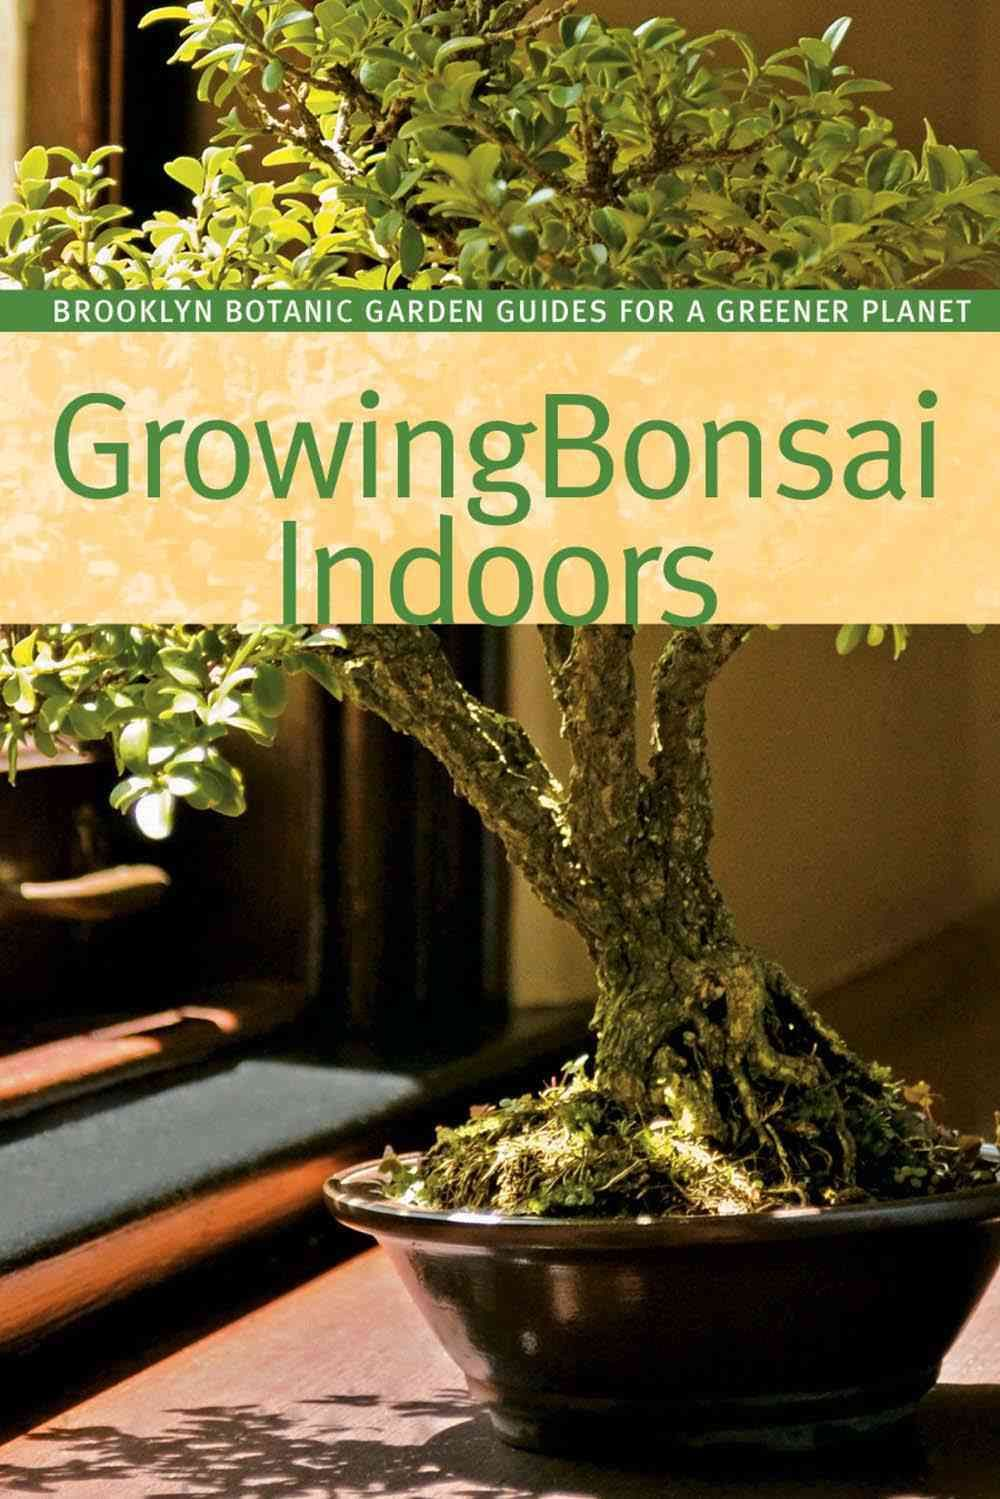 This one-stop guide provides everything bonsai aficionados need to ...